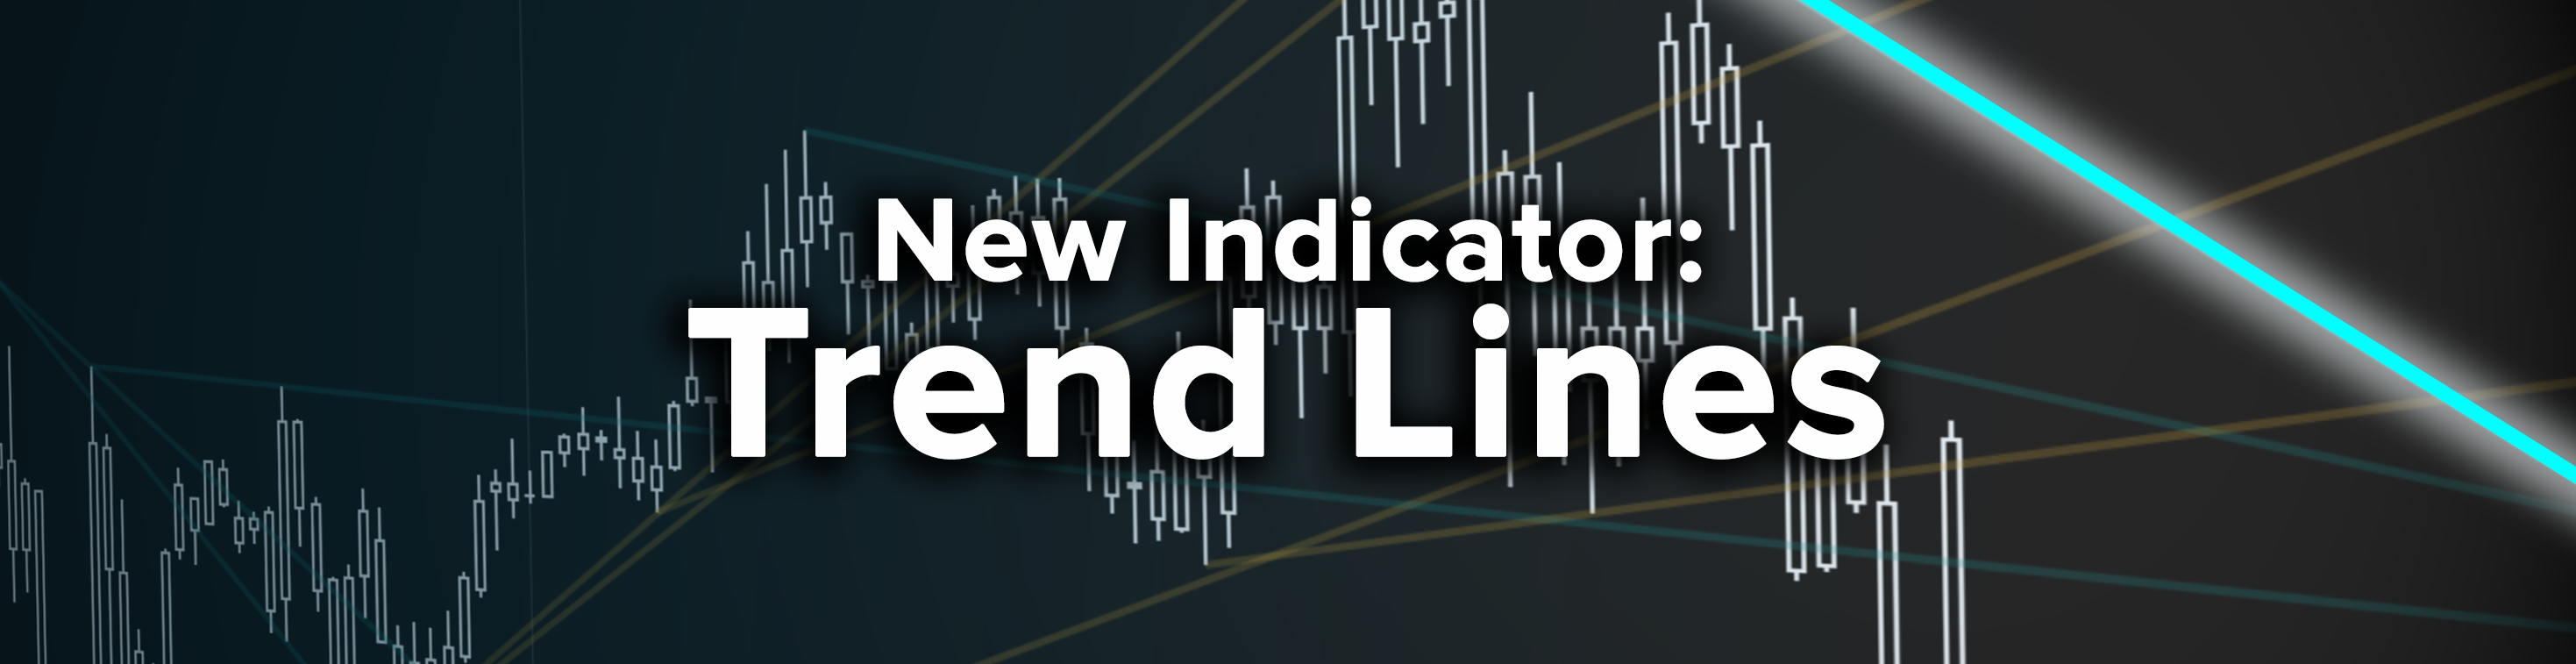 trend line trendline draw automatically indicator